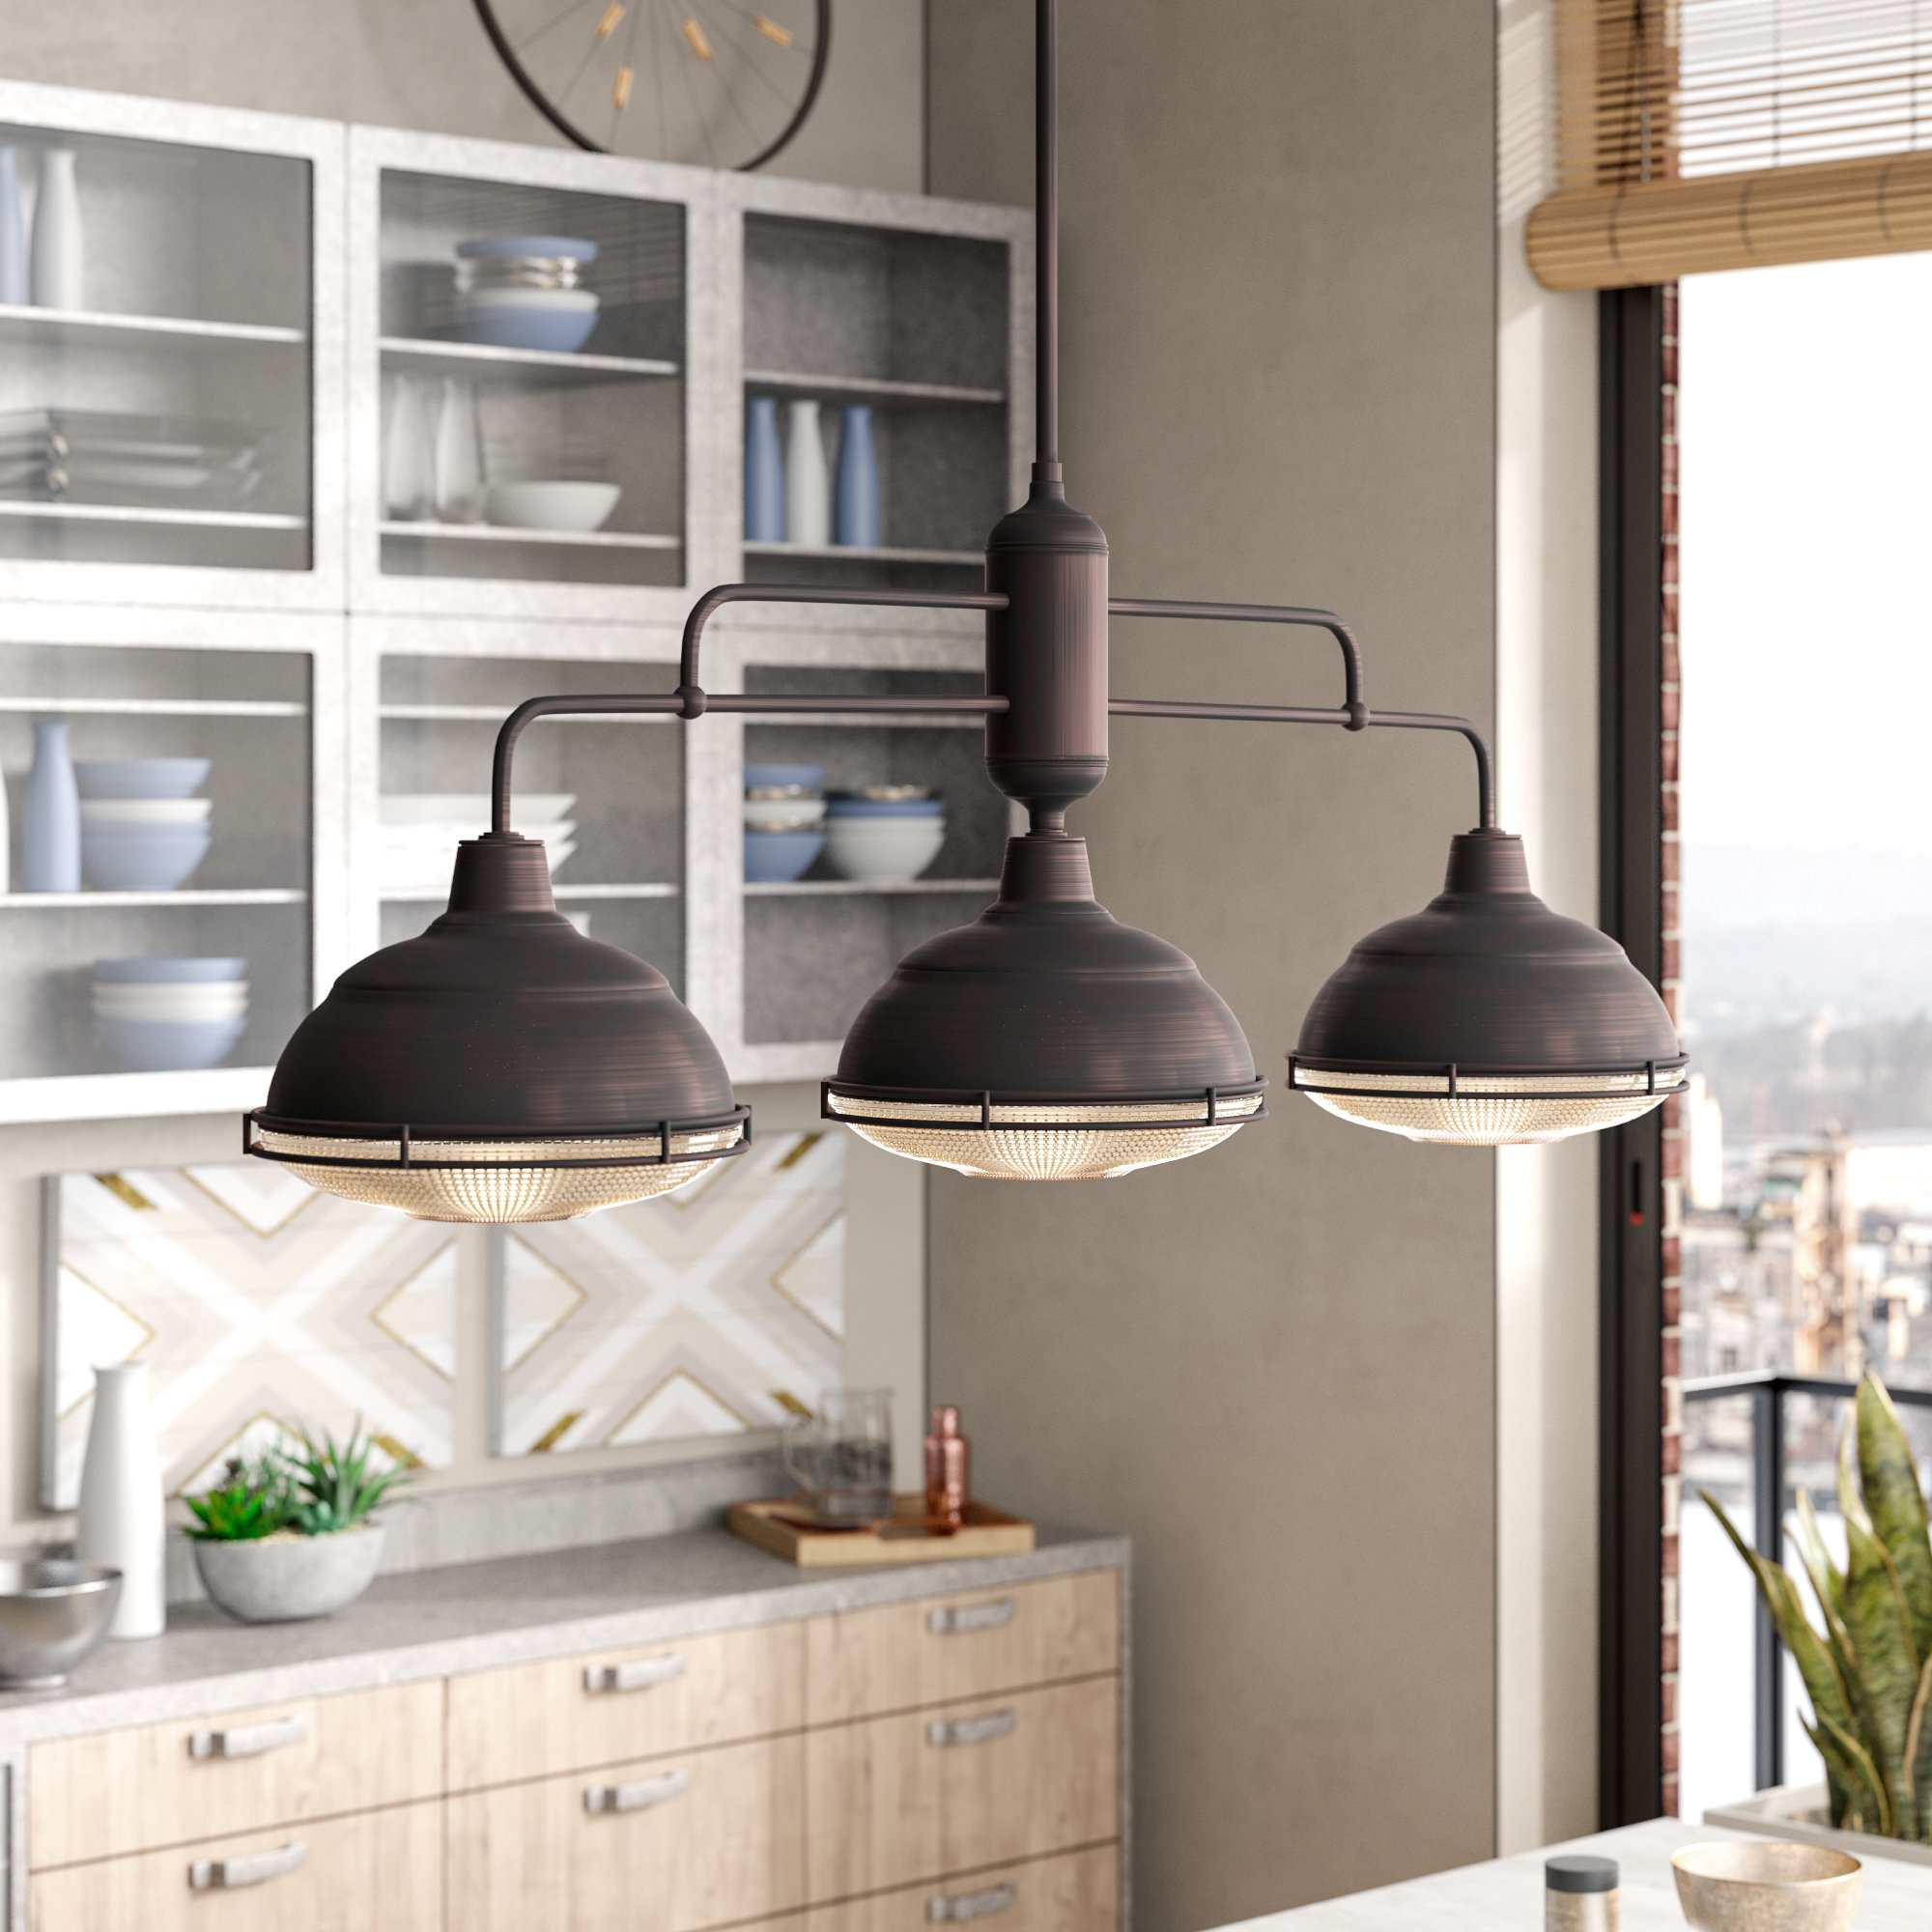 Bruges 3 Light Kitchen Island Dome Pendant Pertaining To Most Popular Martinique 3 Light Kitchen Island Dome Pendants (View 3 of 20)